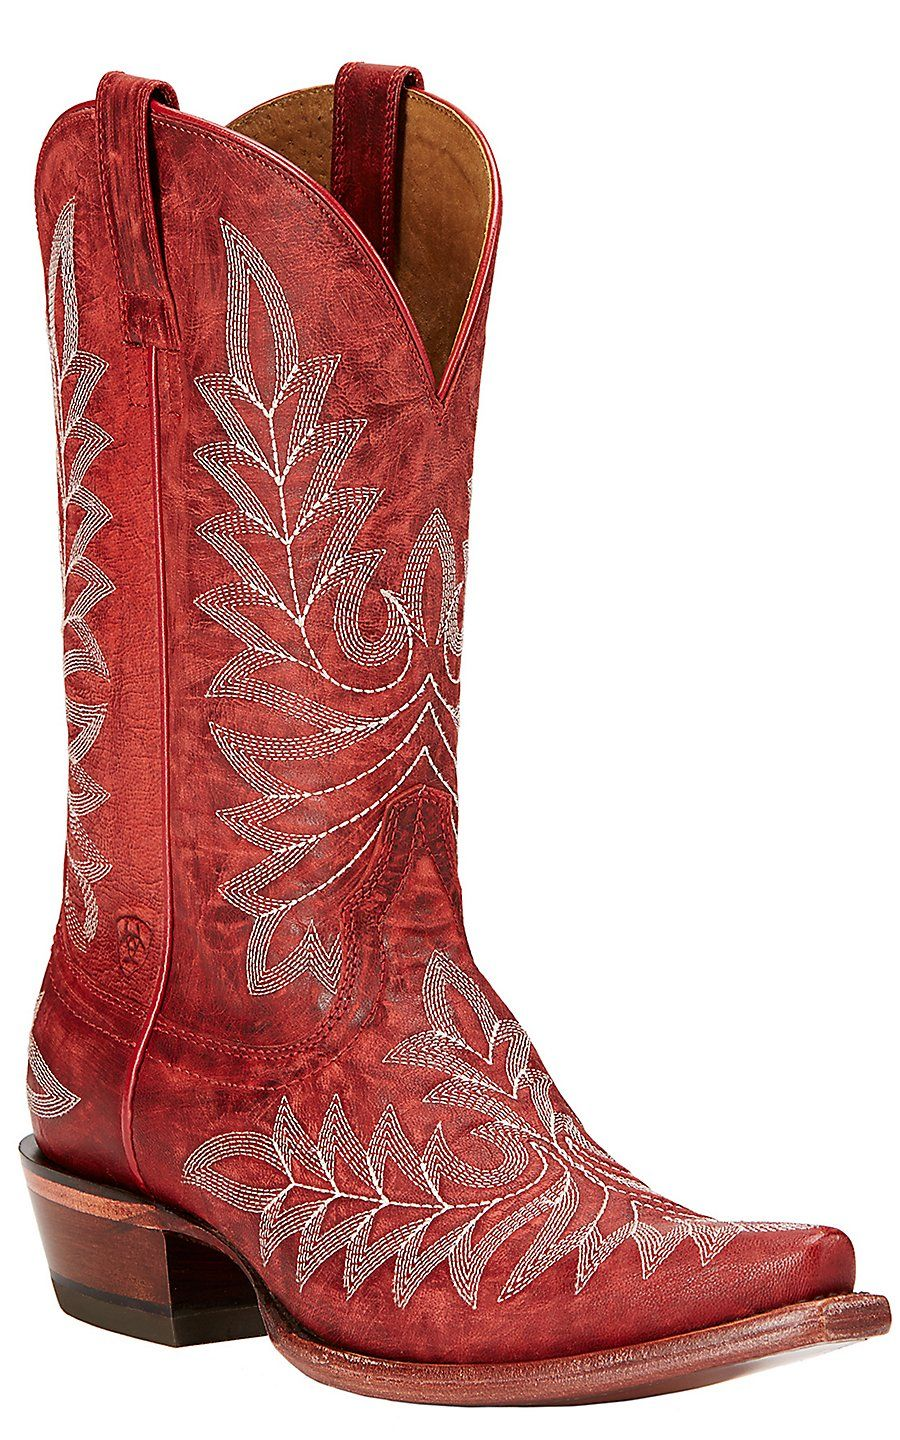 c141f0ea5606 Ariat Brooklyn Women's Revel Red Embroidered Snip Toe Western Boots |  Cavender's